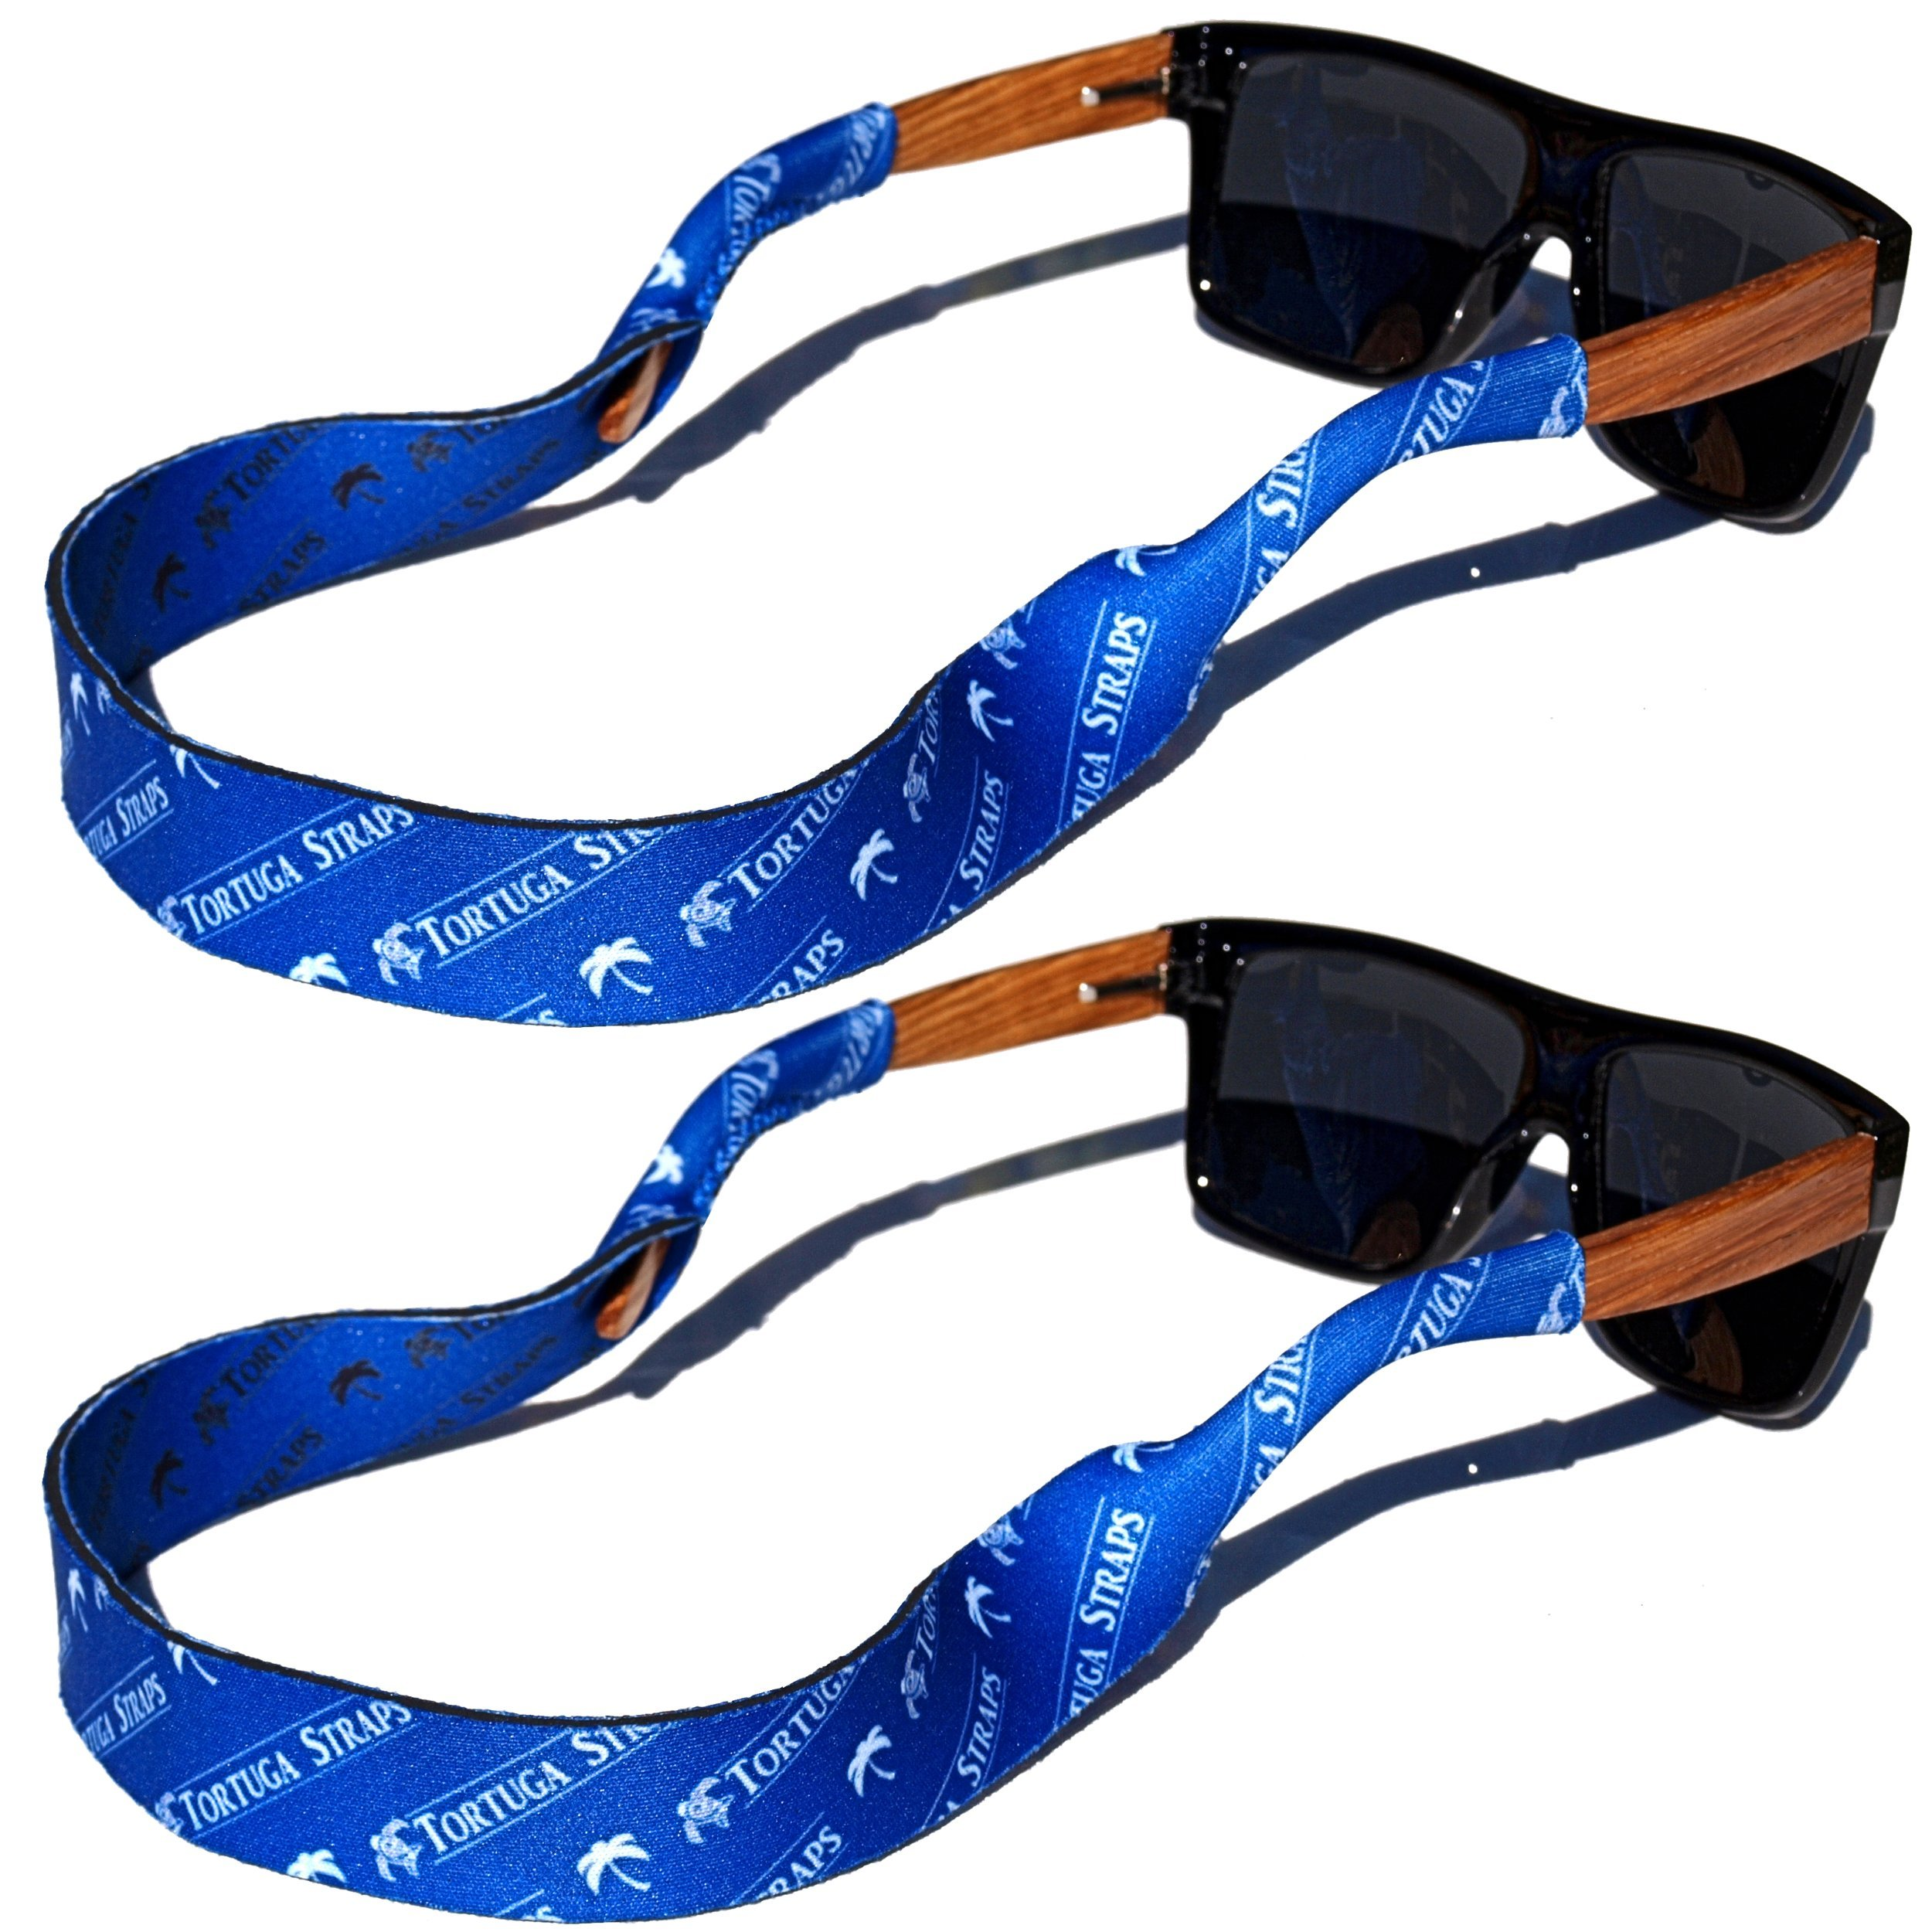 TORTUGA STRAPS FLOATZ RF Sea Blue Glasses Strap - 2 Pk | Floating Adjustable Sunglass Straps | Soft & Comfortable Dual Sided Fabric | 3MM Neoprene Base for Added Durability | Universal Easy Fit by Playa Vida